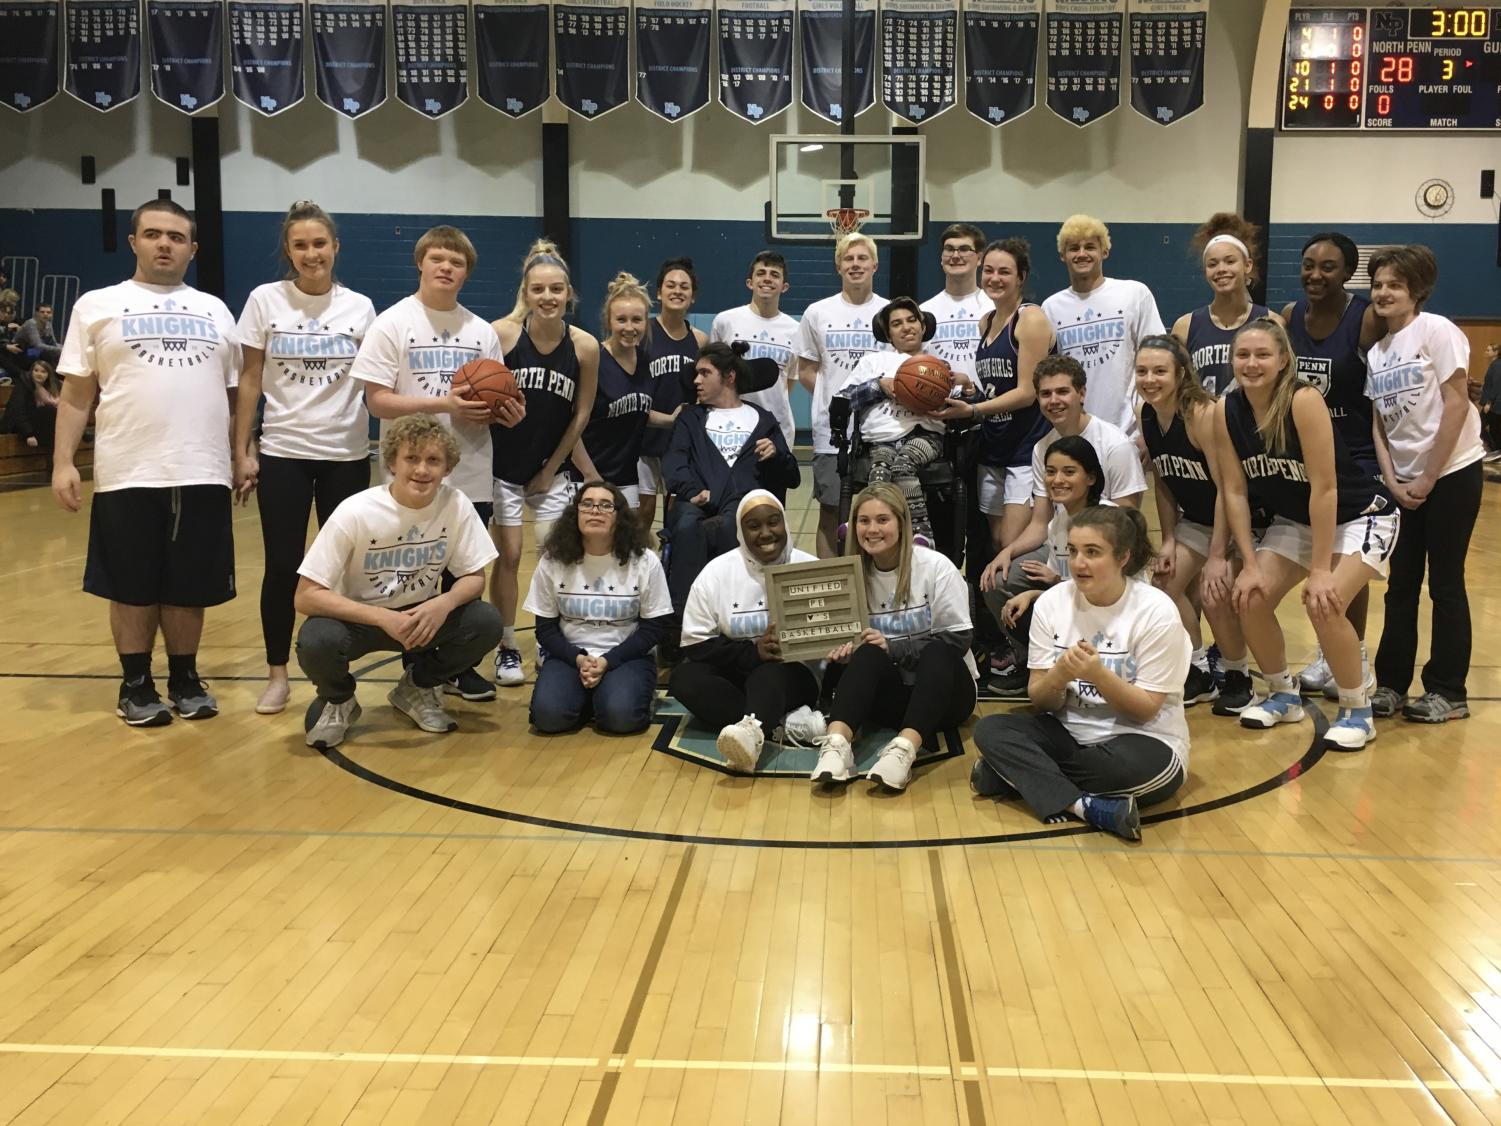 The unified basketball game was an opportunity for athletes in the inclusive gym class to have fun and show off their basketball skills.